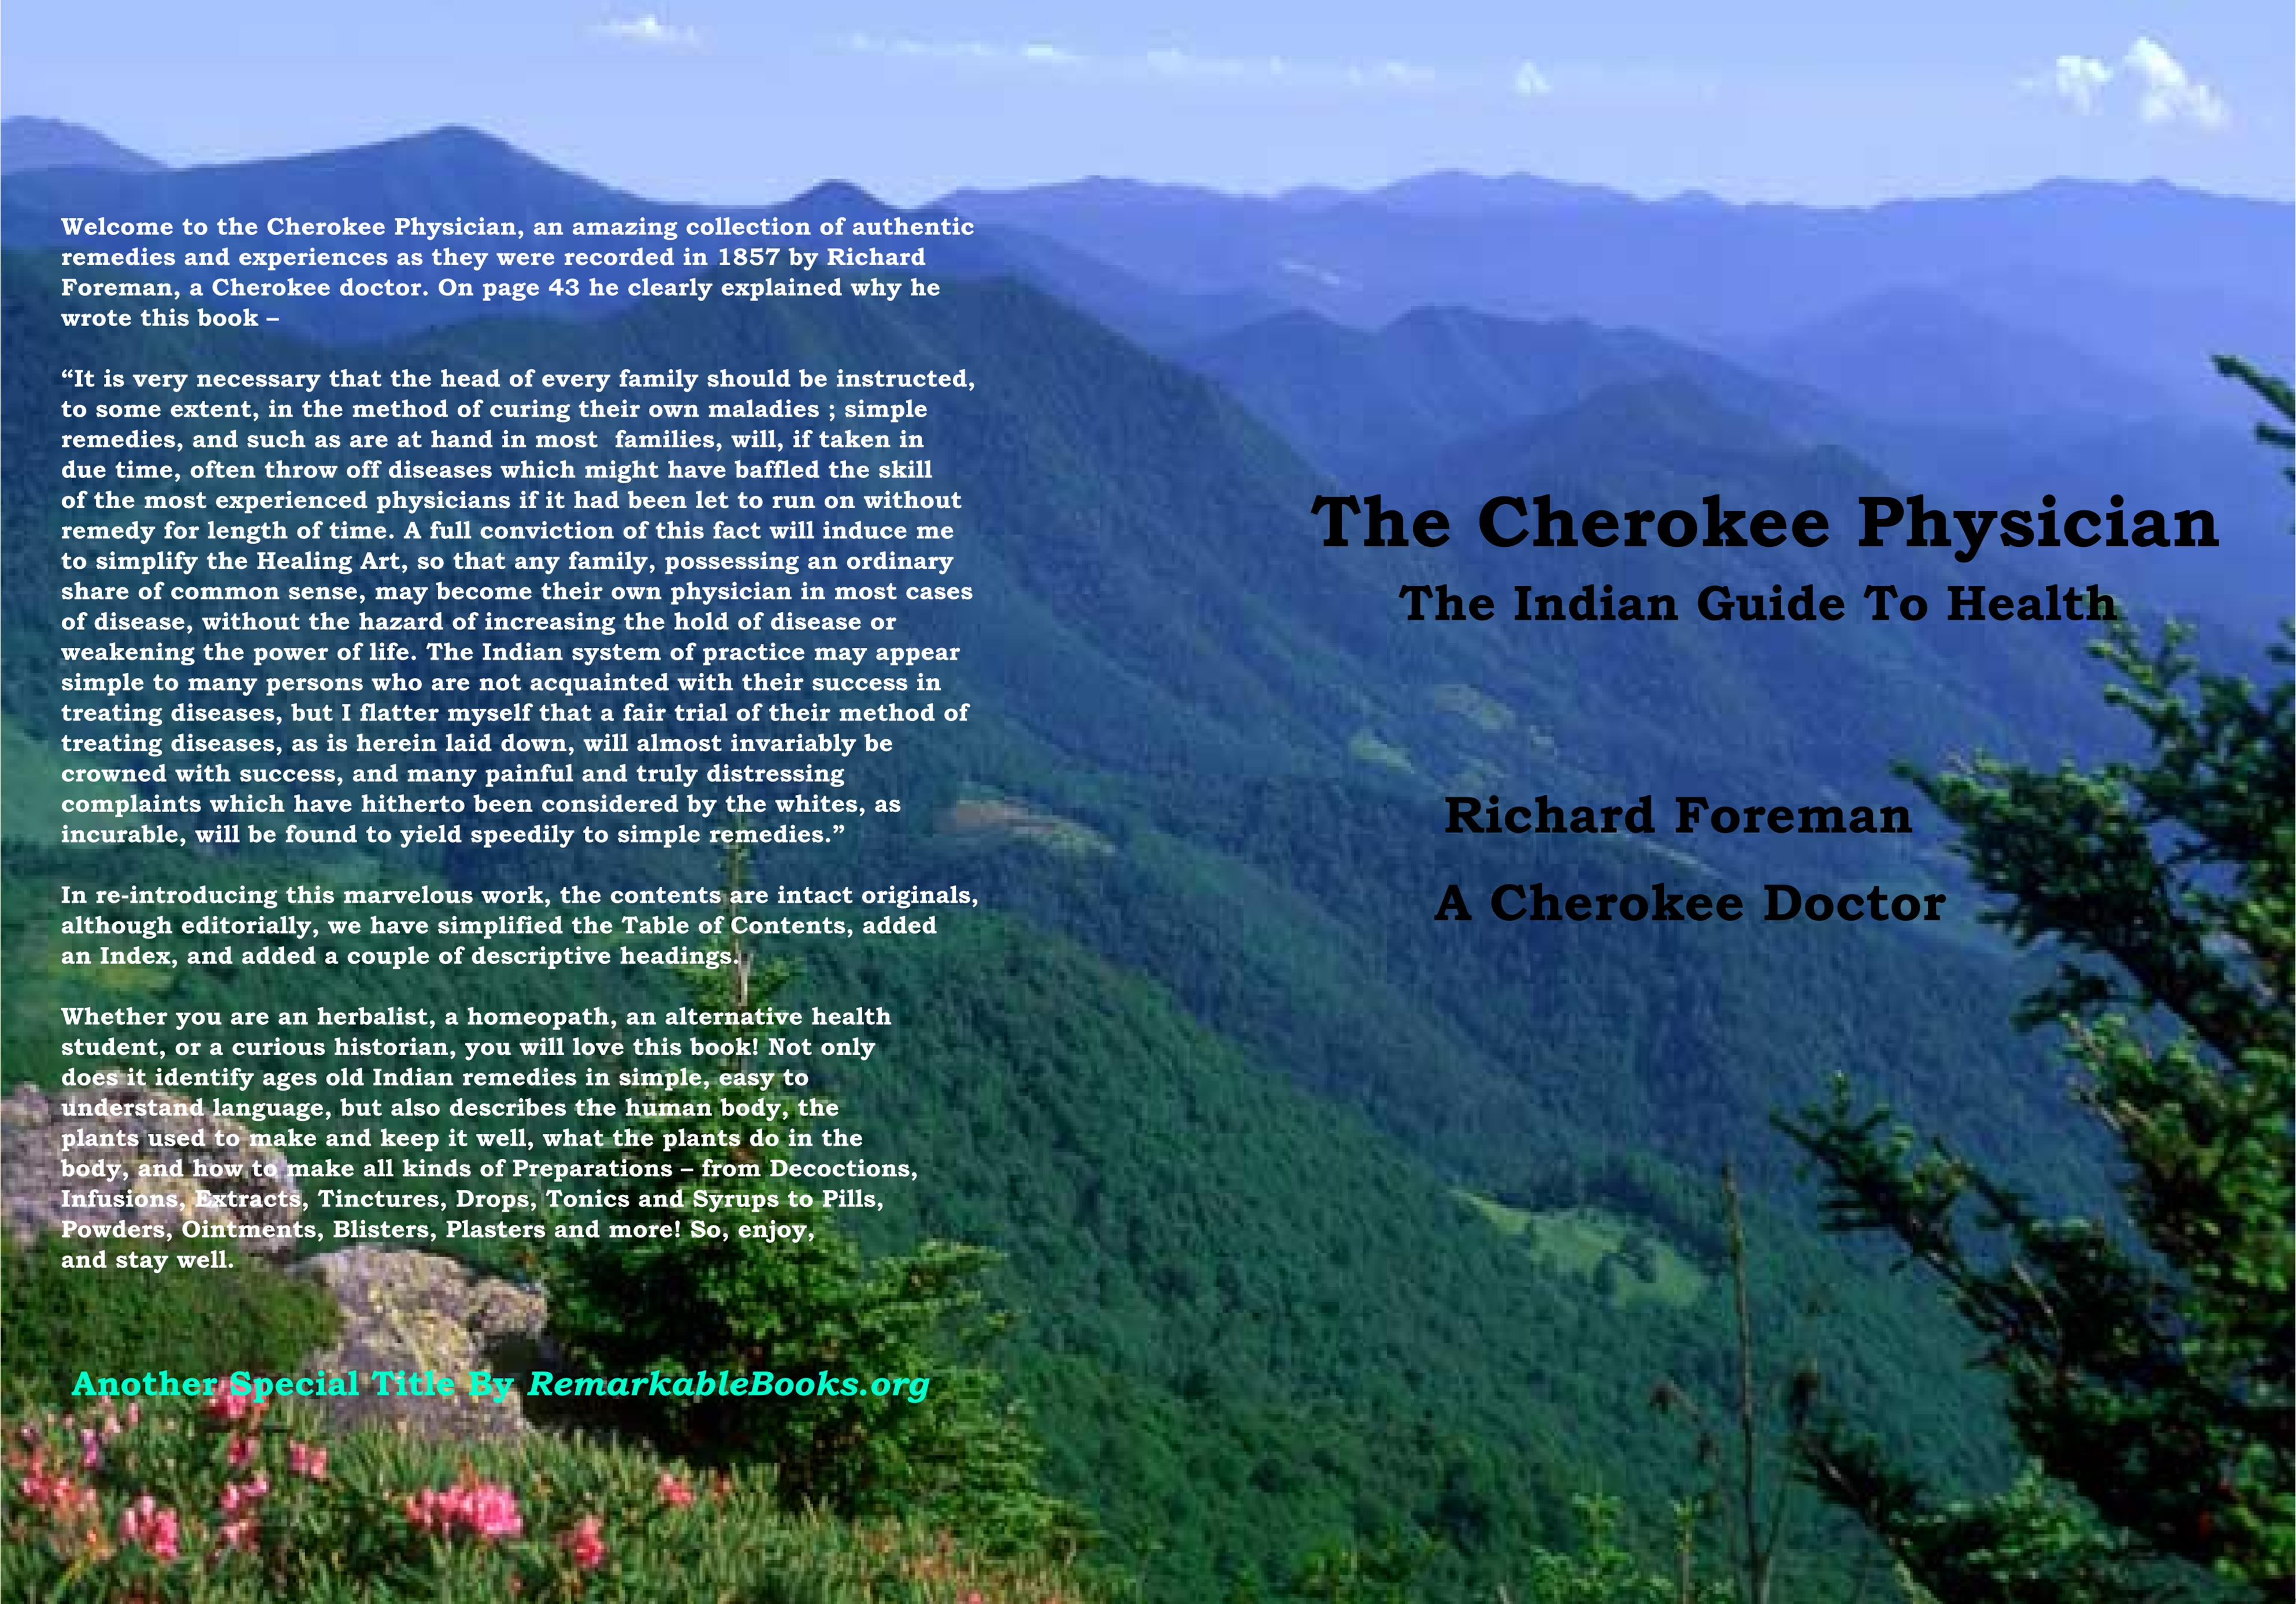 The Cherokee Physician cover image